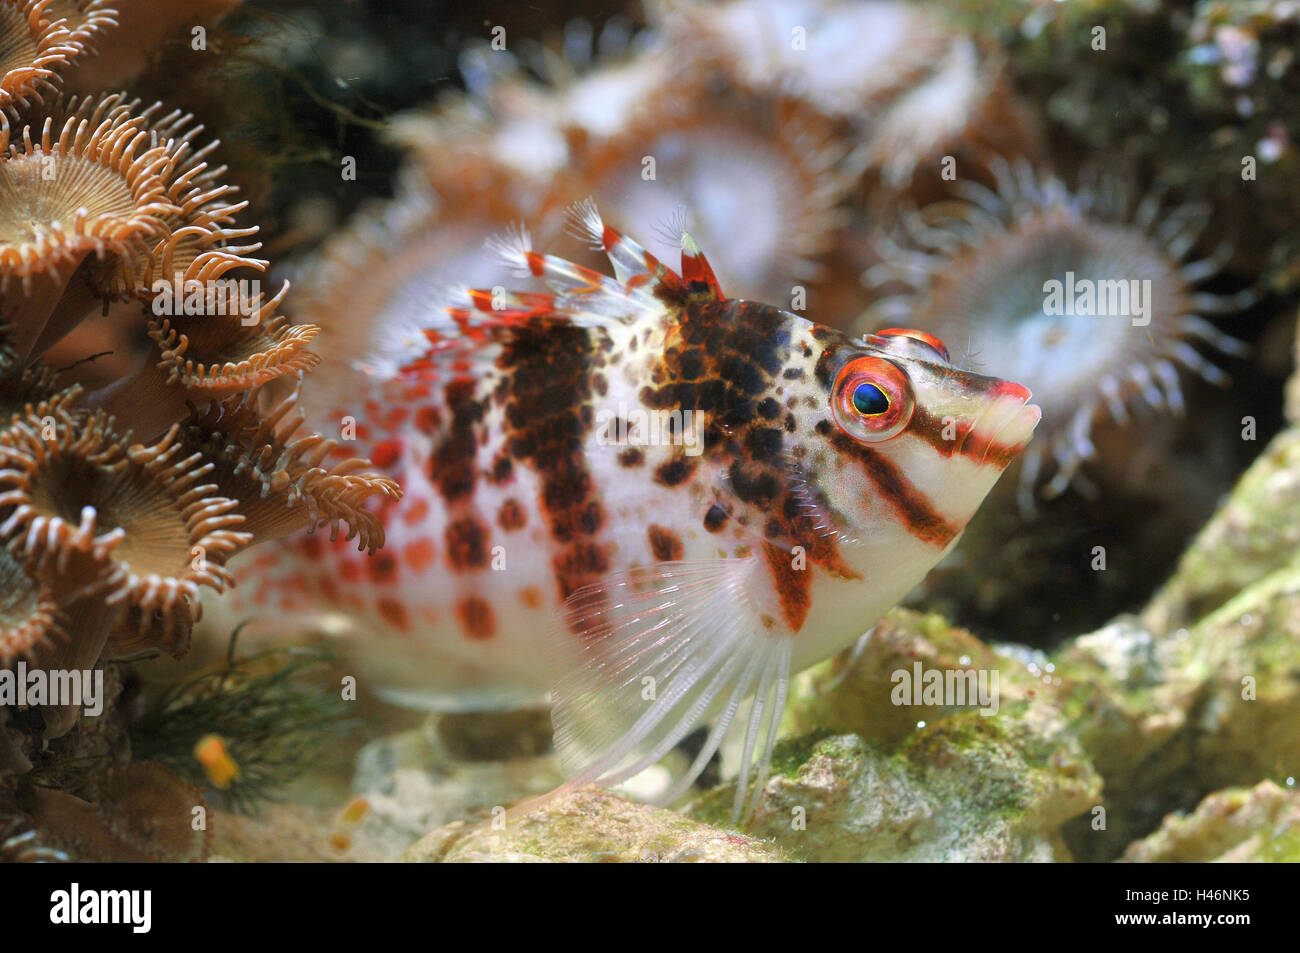 Tropical fish in coral reef, sea anemones, Stock Photo